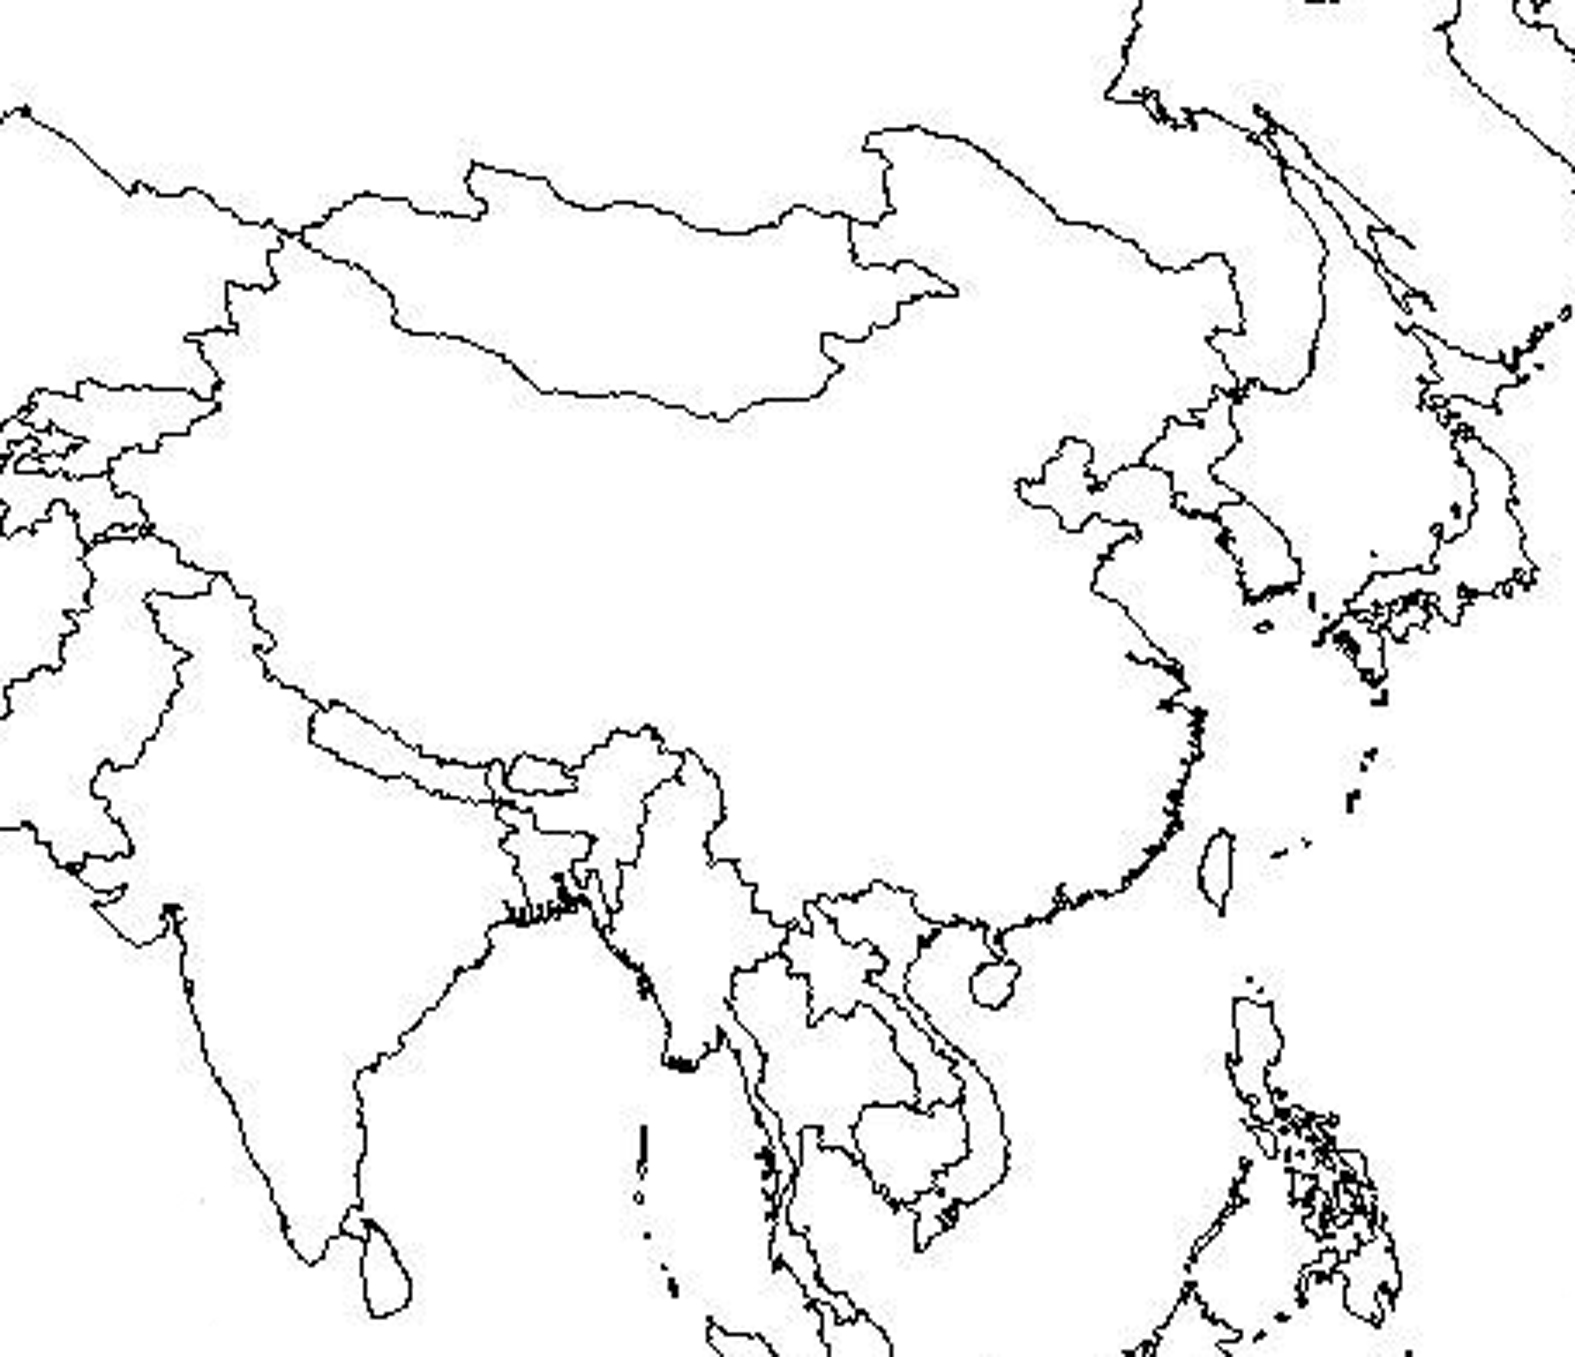 Blank+east+asia+map+outline